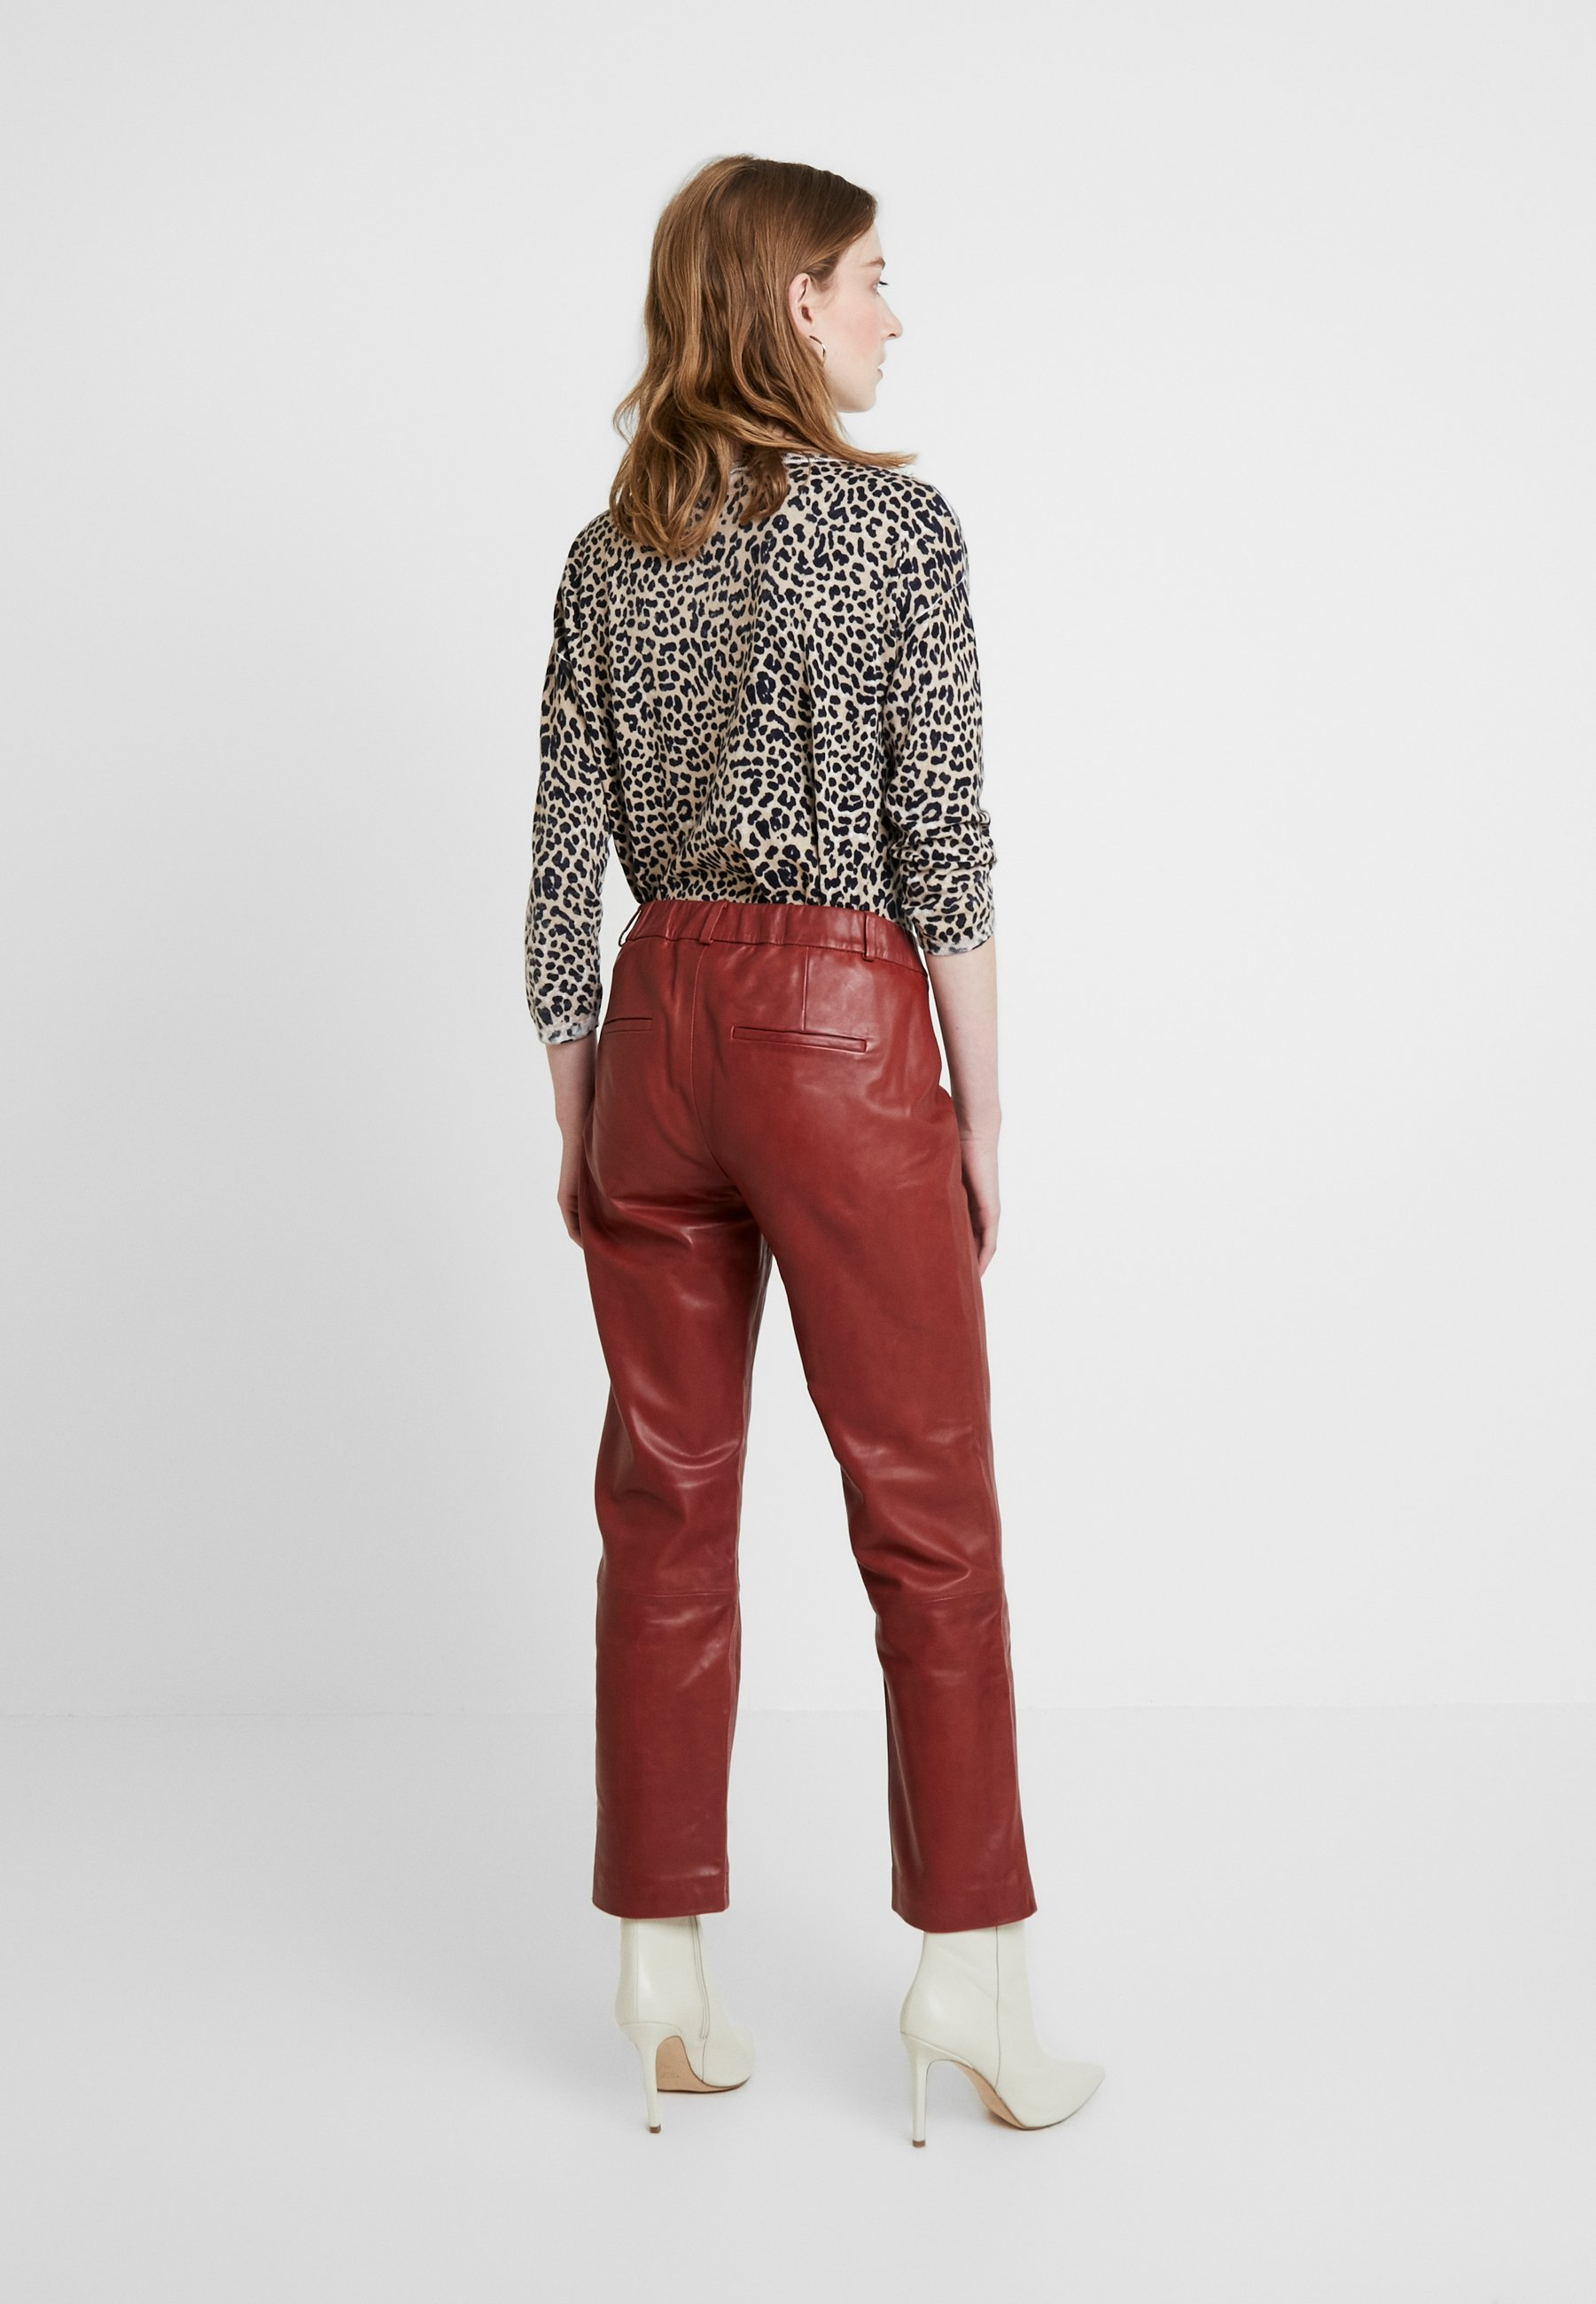 Pants Dranella Fashion Evi Spiced Di FitPantaloni Pelle Apple dxBCeoWEQr